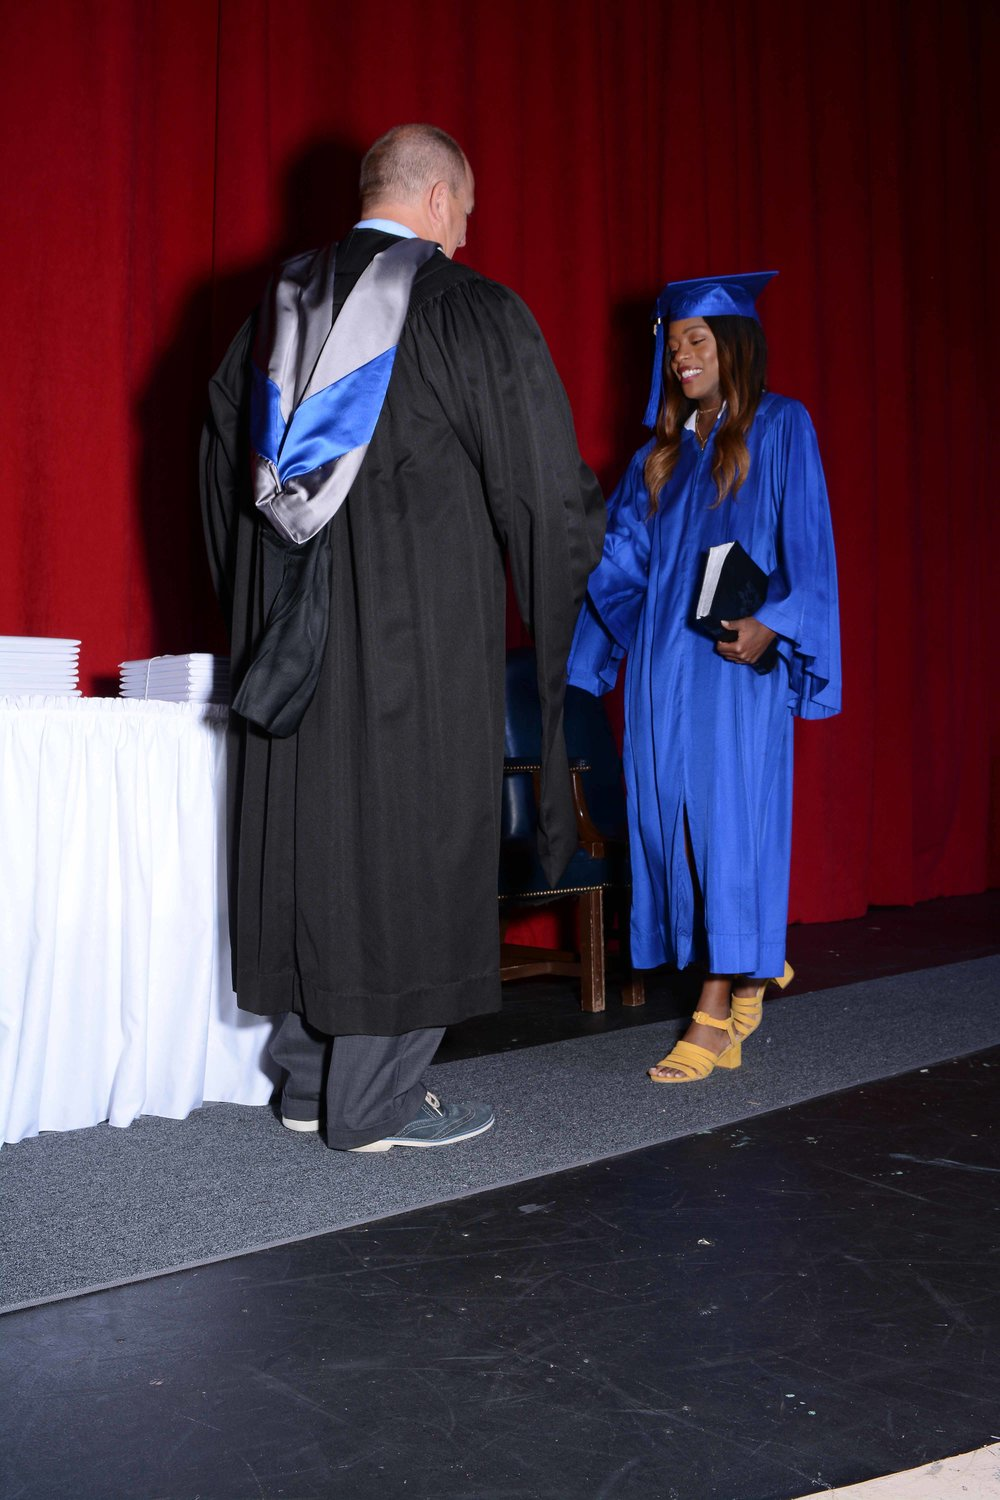 May14 Commencement144.jpg